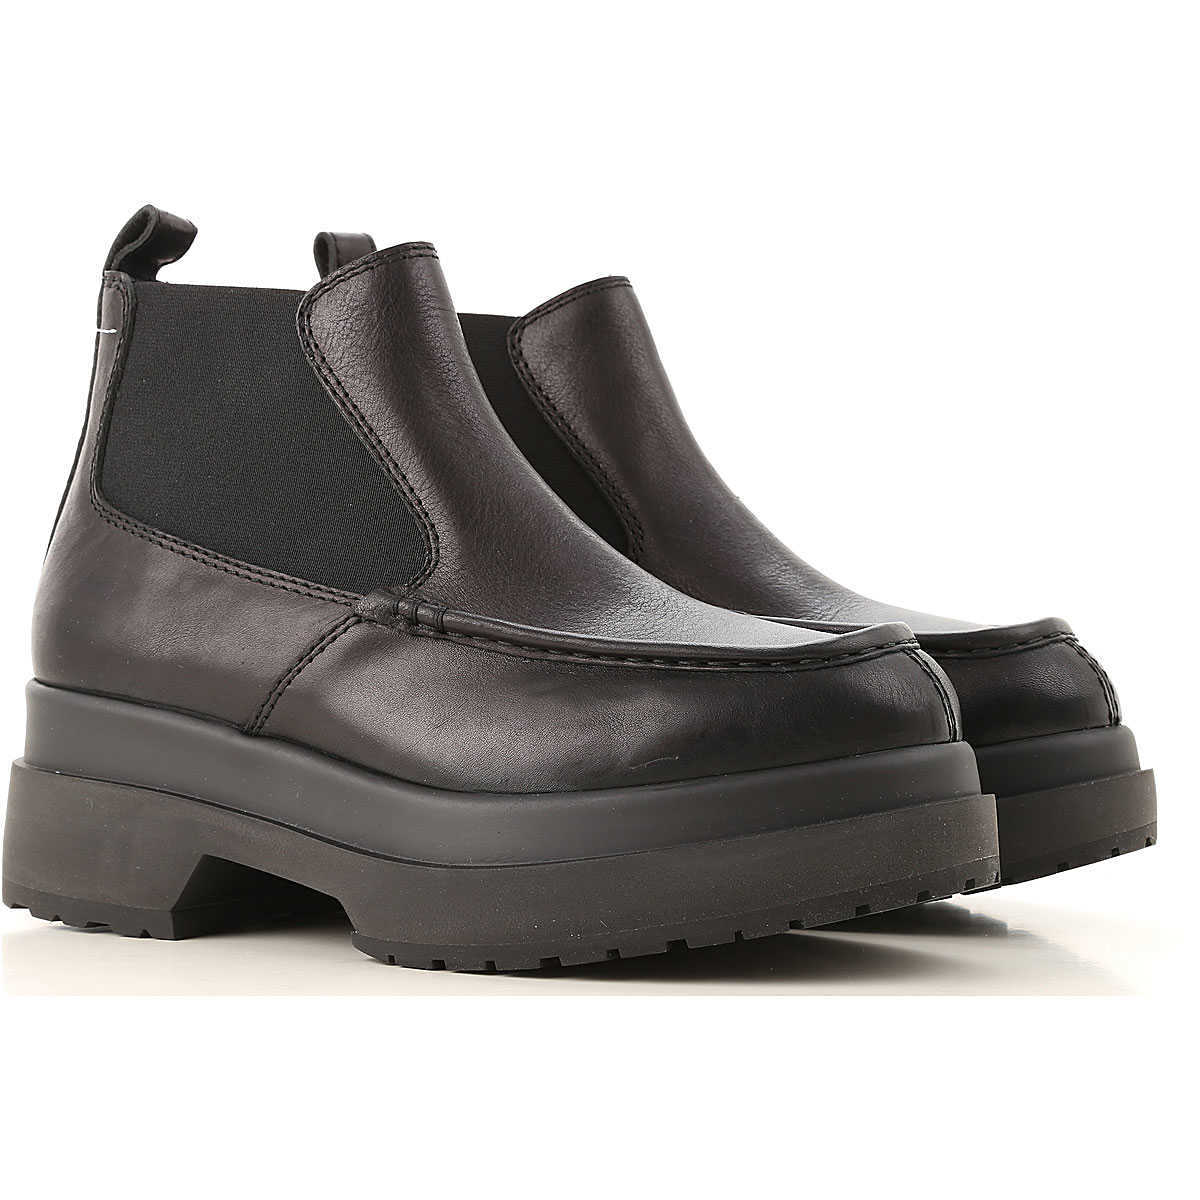 Maison Martin Margiela Chelsea Boots for Women Black - GOOFASH